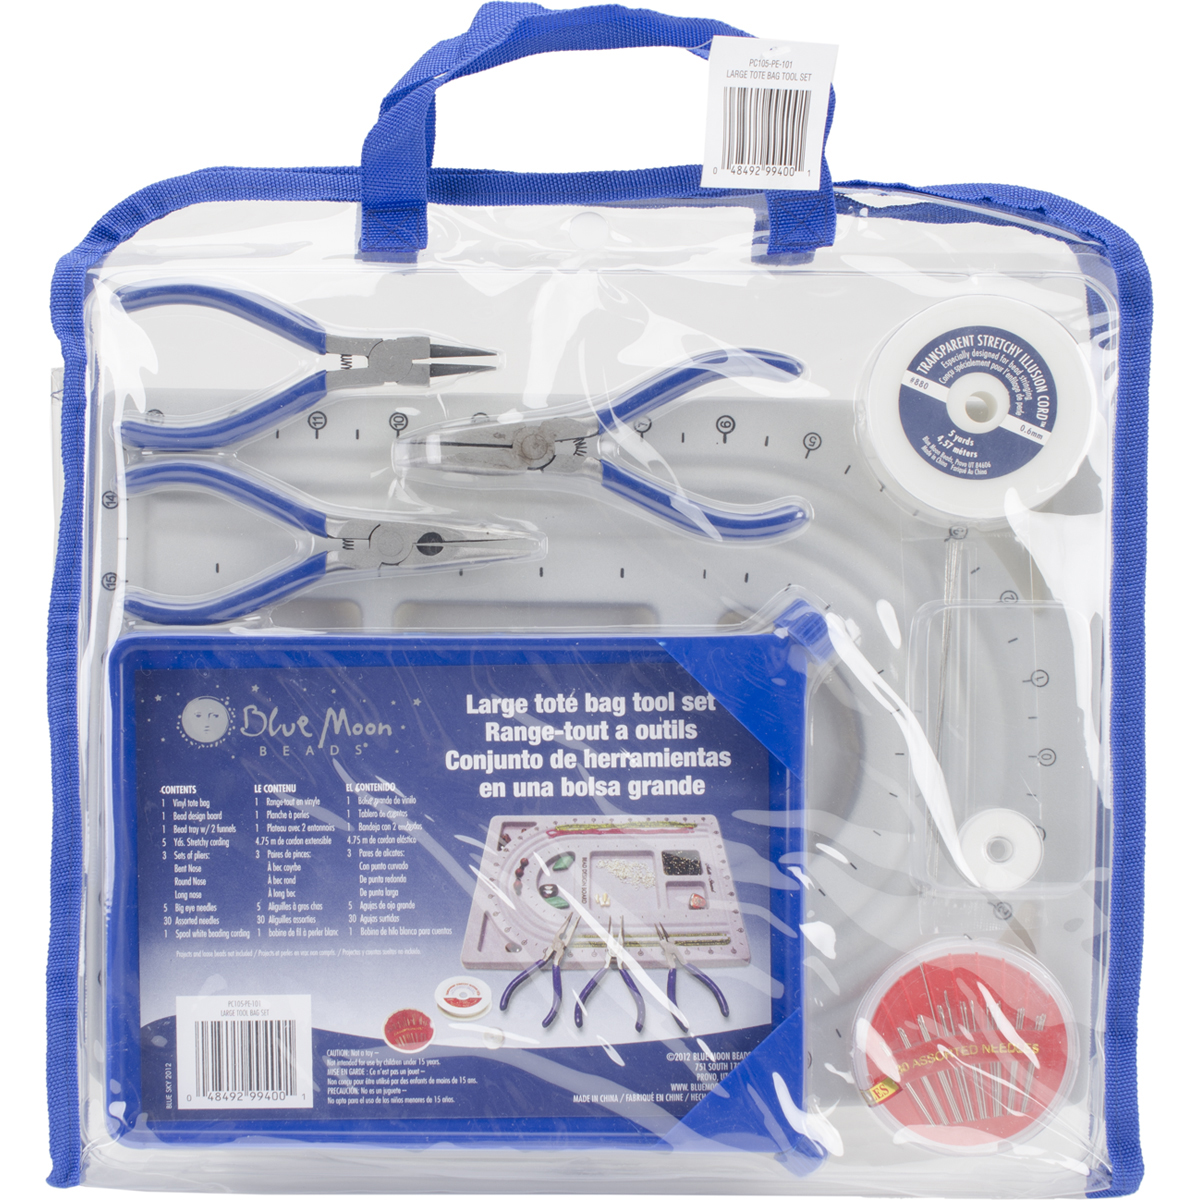 Westrim Jewelry Tool Set with Tote Bag